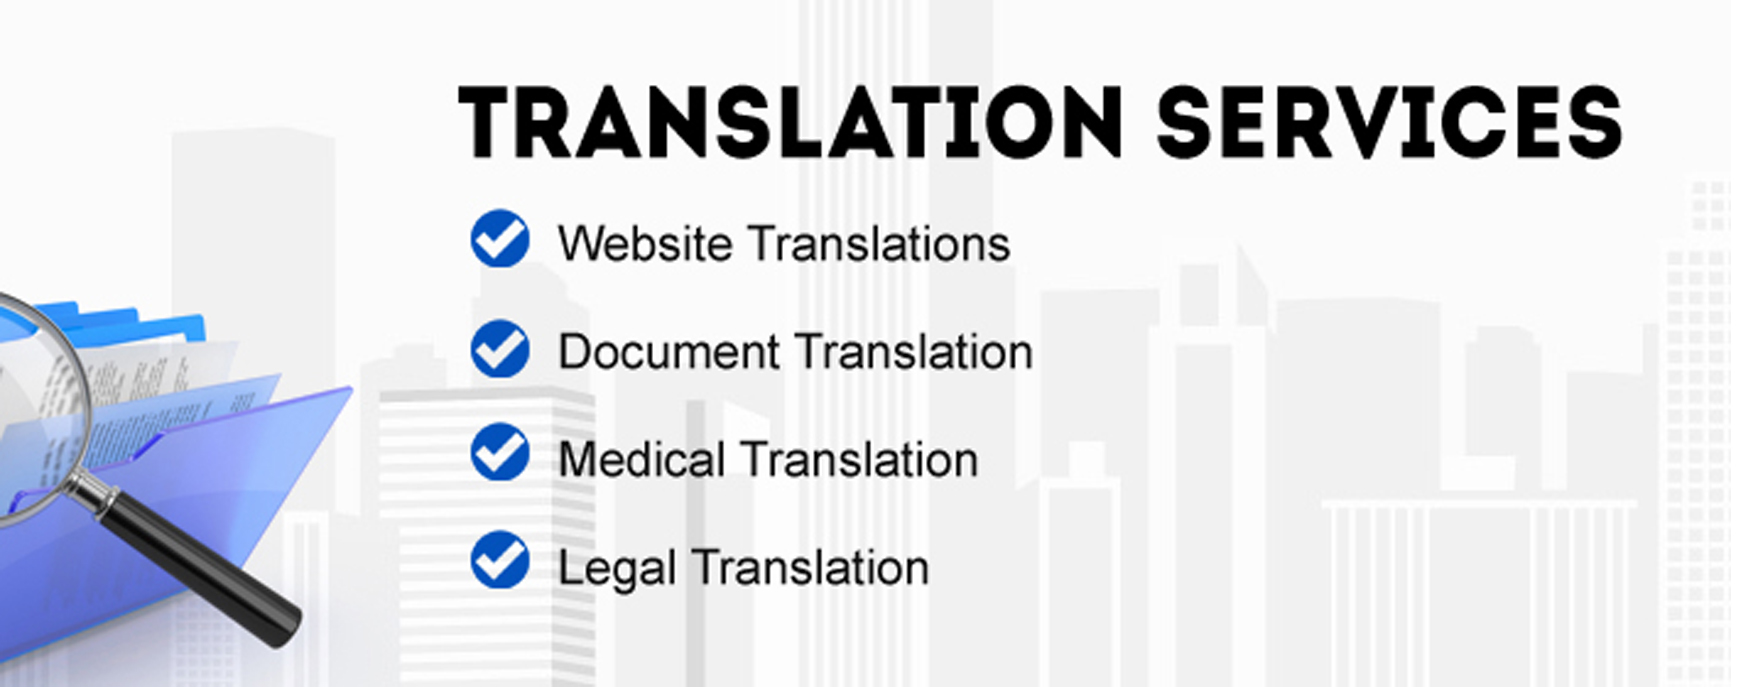 Translation Services & zulu Translation Johannesburg, Pretoria, Cape Town & Durban